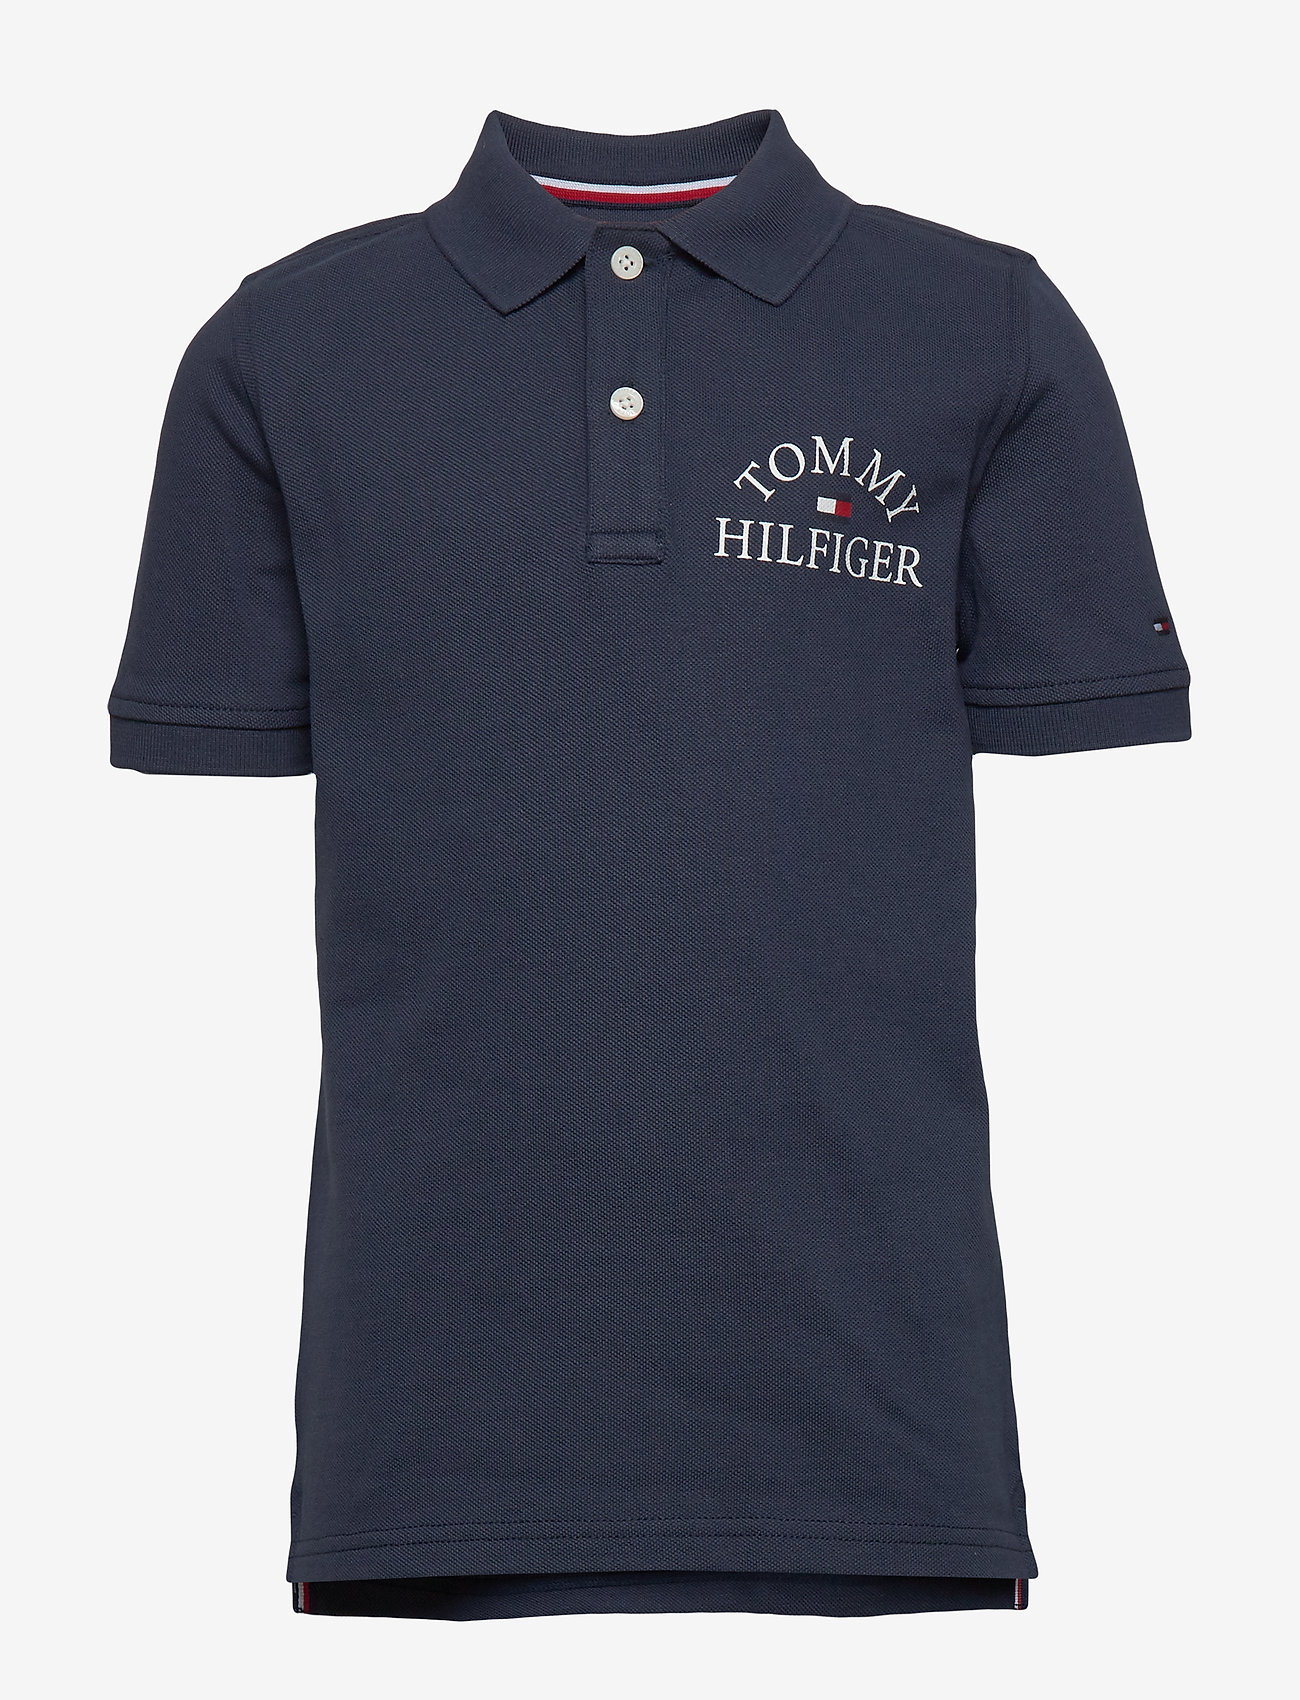 Tommy Hilfiger - ESSENTIAL LOGO CHEST POLO S/S - polo shirts - twilight navy 654-860 - 0